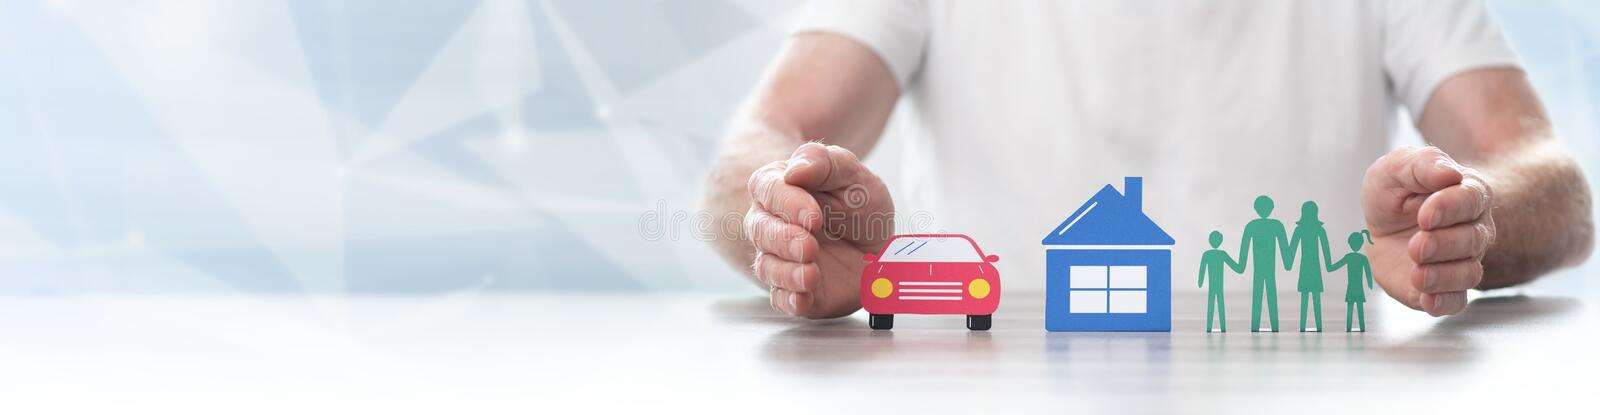 Concept of life, home and auto insurance- Panoramic banner. Family, house and car protected by hands - Concept of life, home and auto insurance - Panoramic stock photos